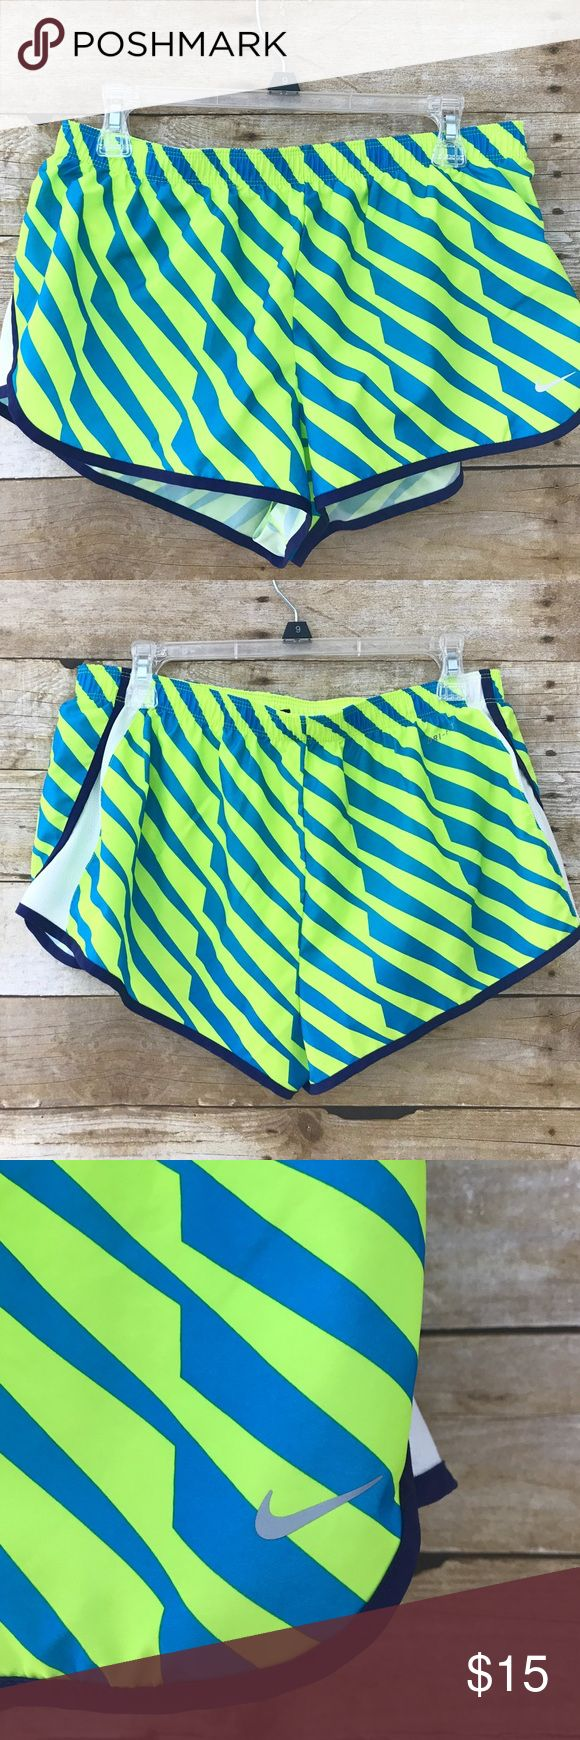 Nike Dri Fit Running Graphic Neon Shorts excellent condition neon graphic running Dri fit shirts by Nike. Only used once! 100% polyester.   **For your privacy, I do not tag buyers after purchase. I ship same day or next day (if you purchase after 1pm). However, if you have a question and don't mind being tagged, go ahead and ask under the item! Thanks! Nike Shorts